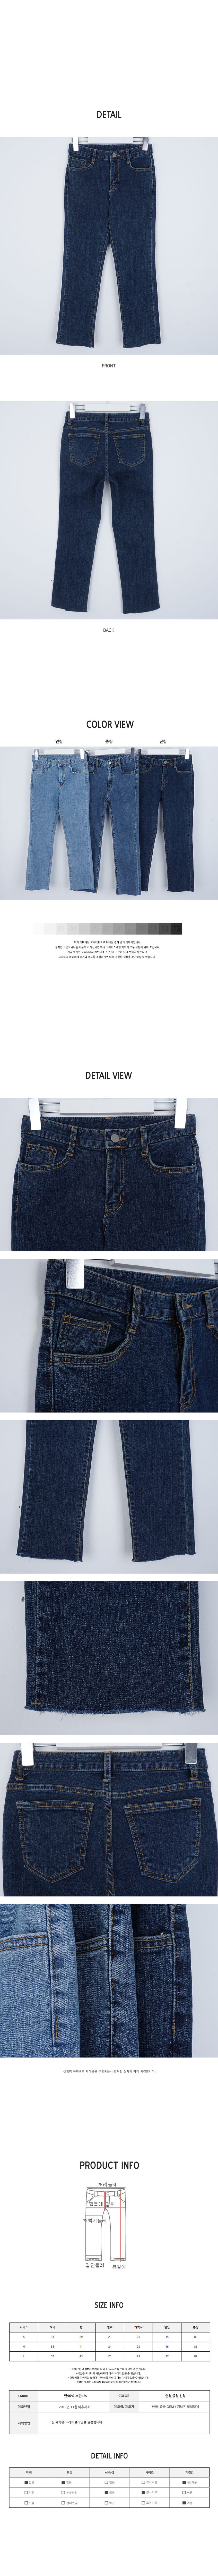 Wayne denim jeans